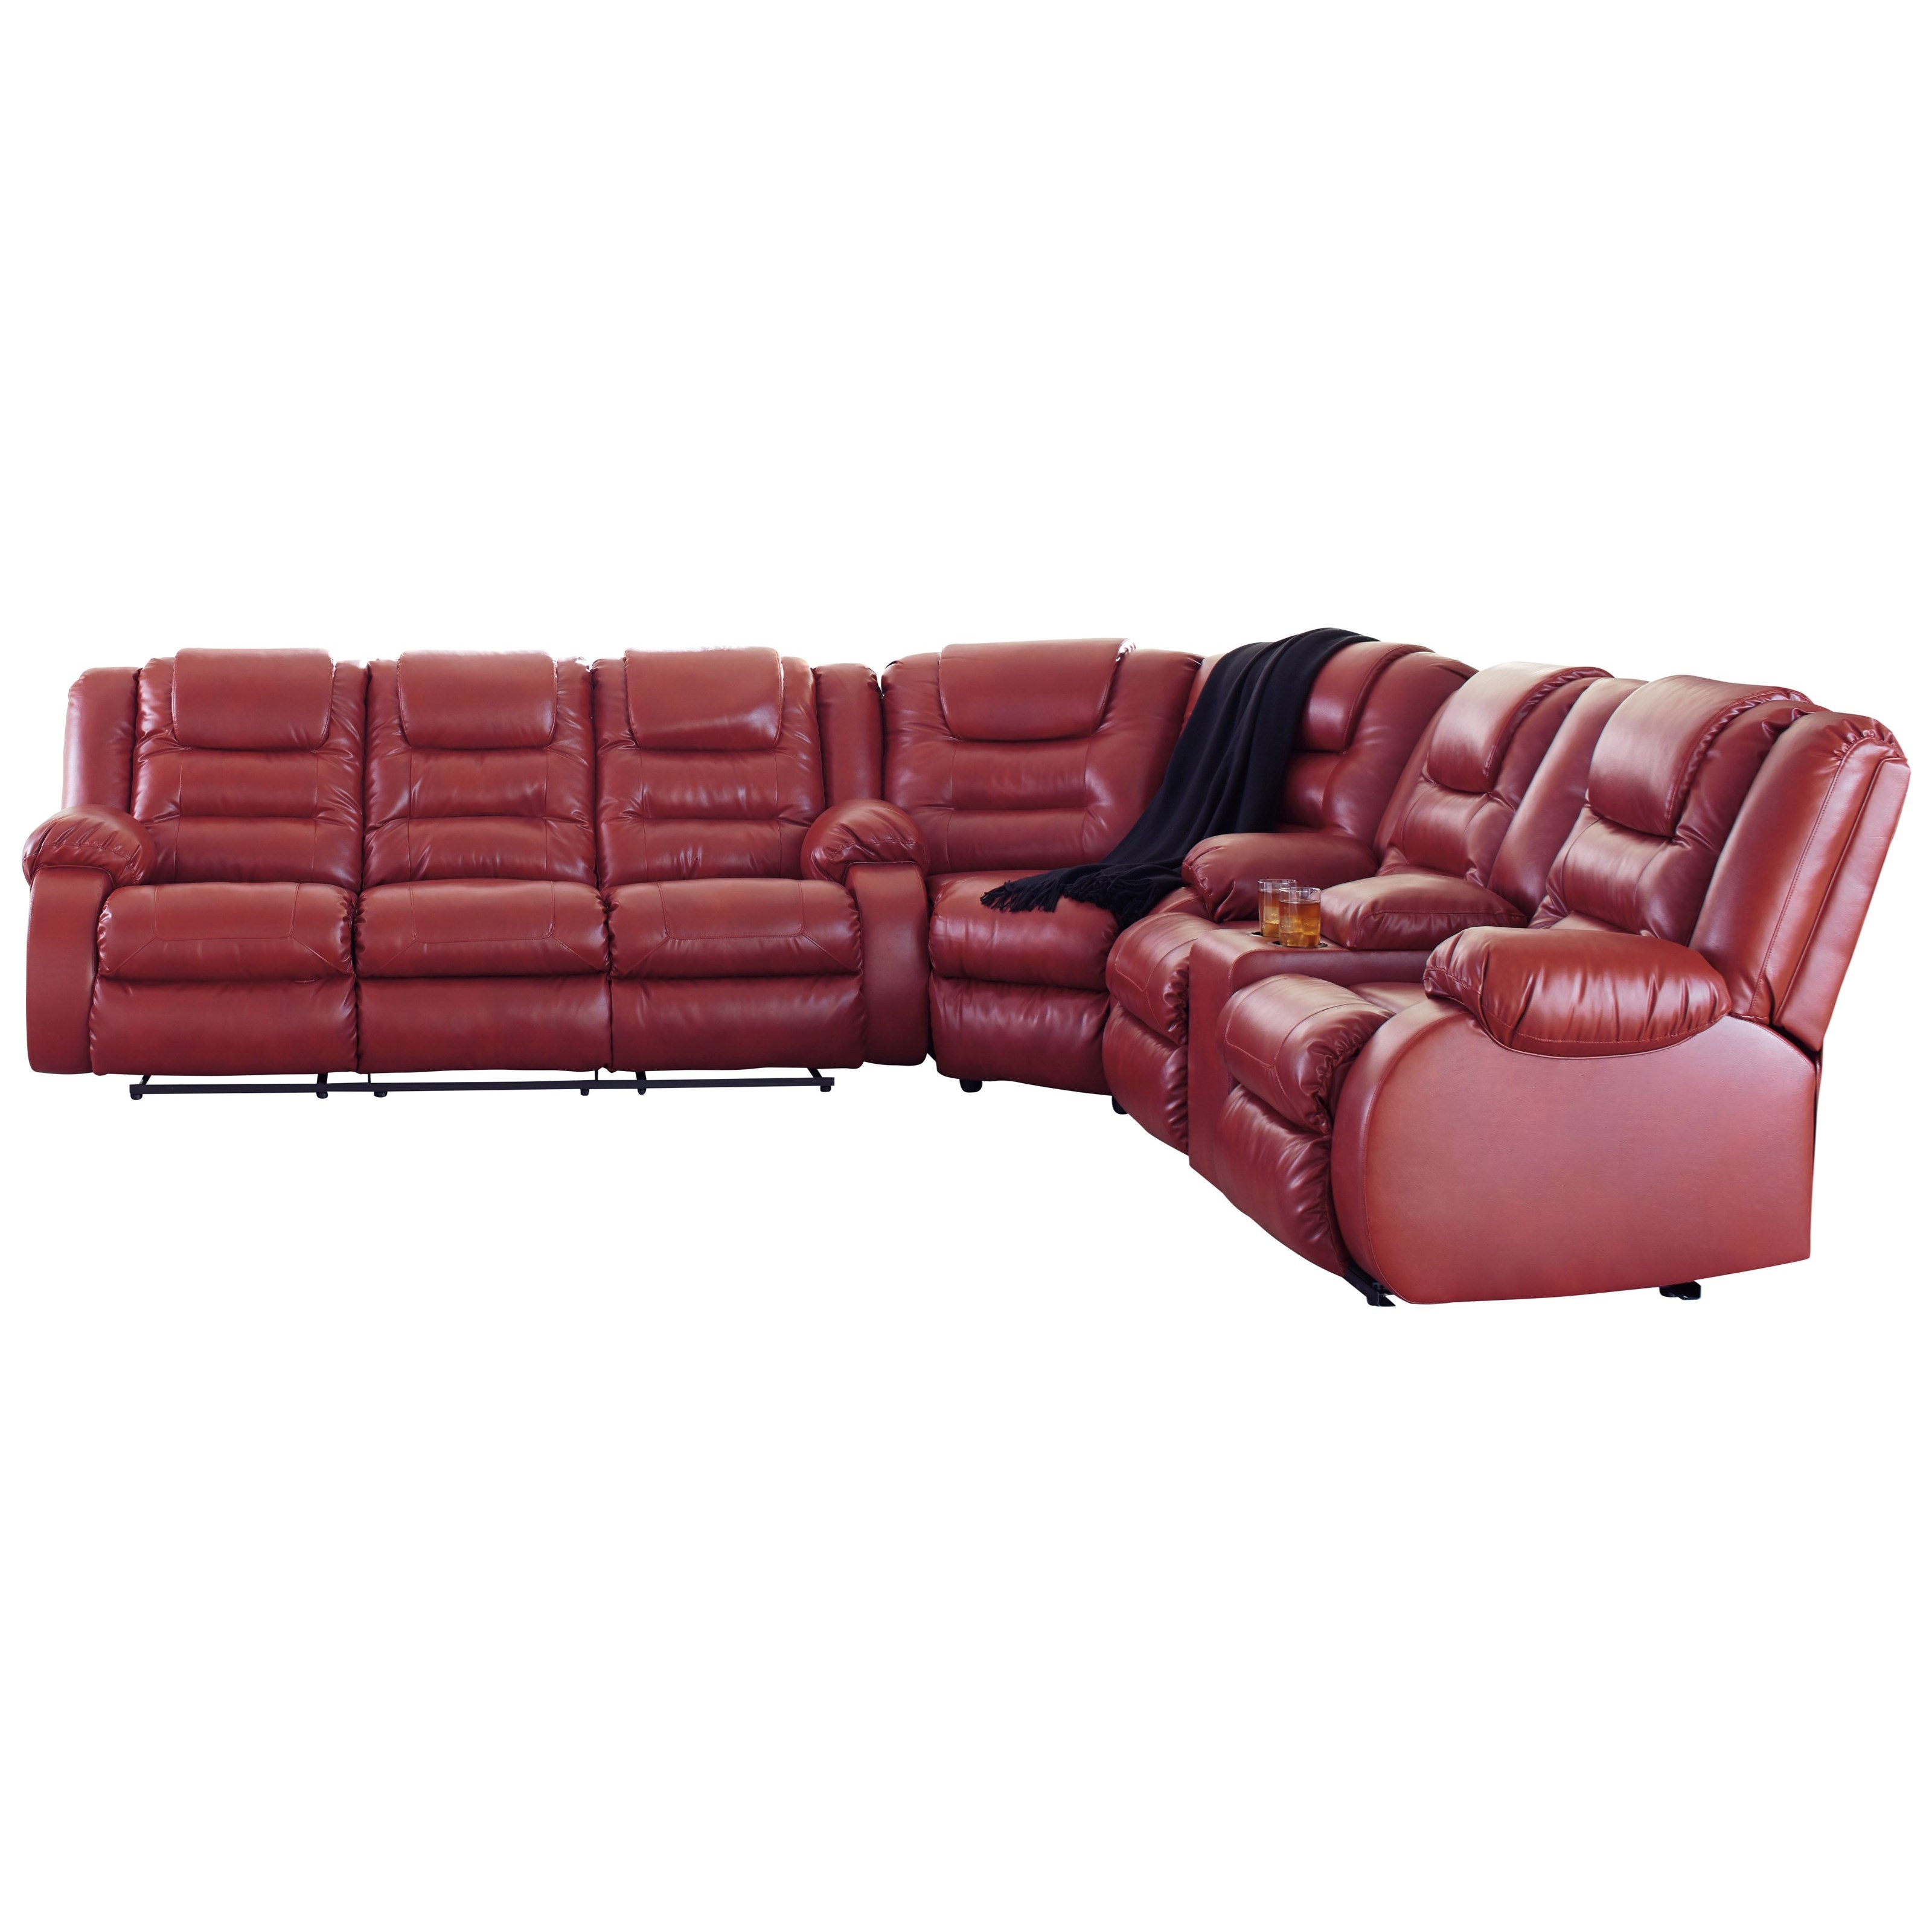 Signature Design by Ashley Vacherie Reclining Sectional Sofa - Item Number: 7930688+77+94